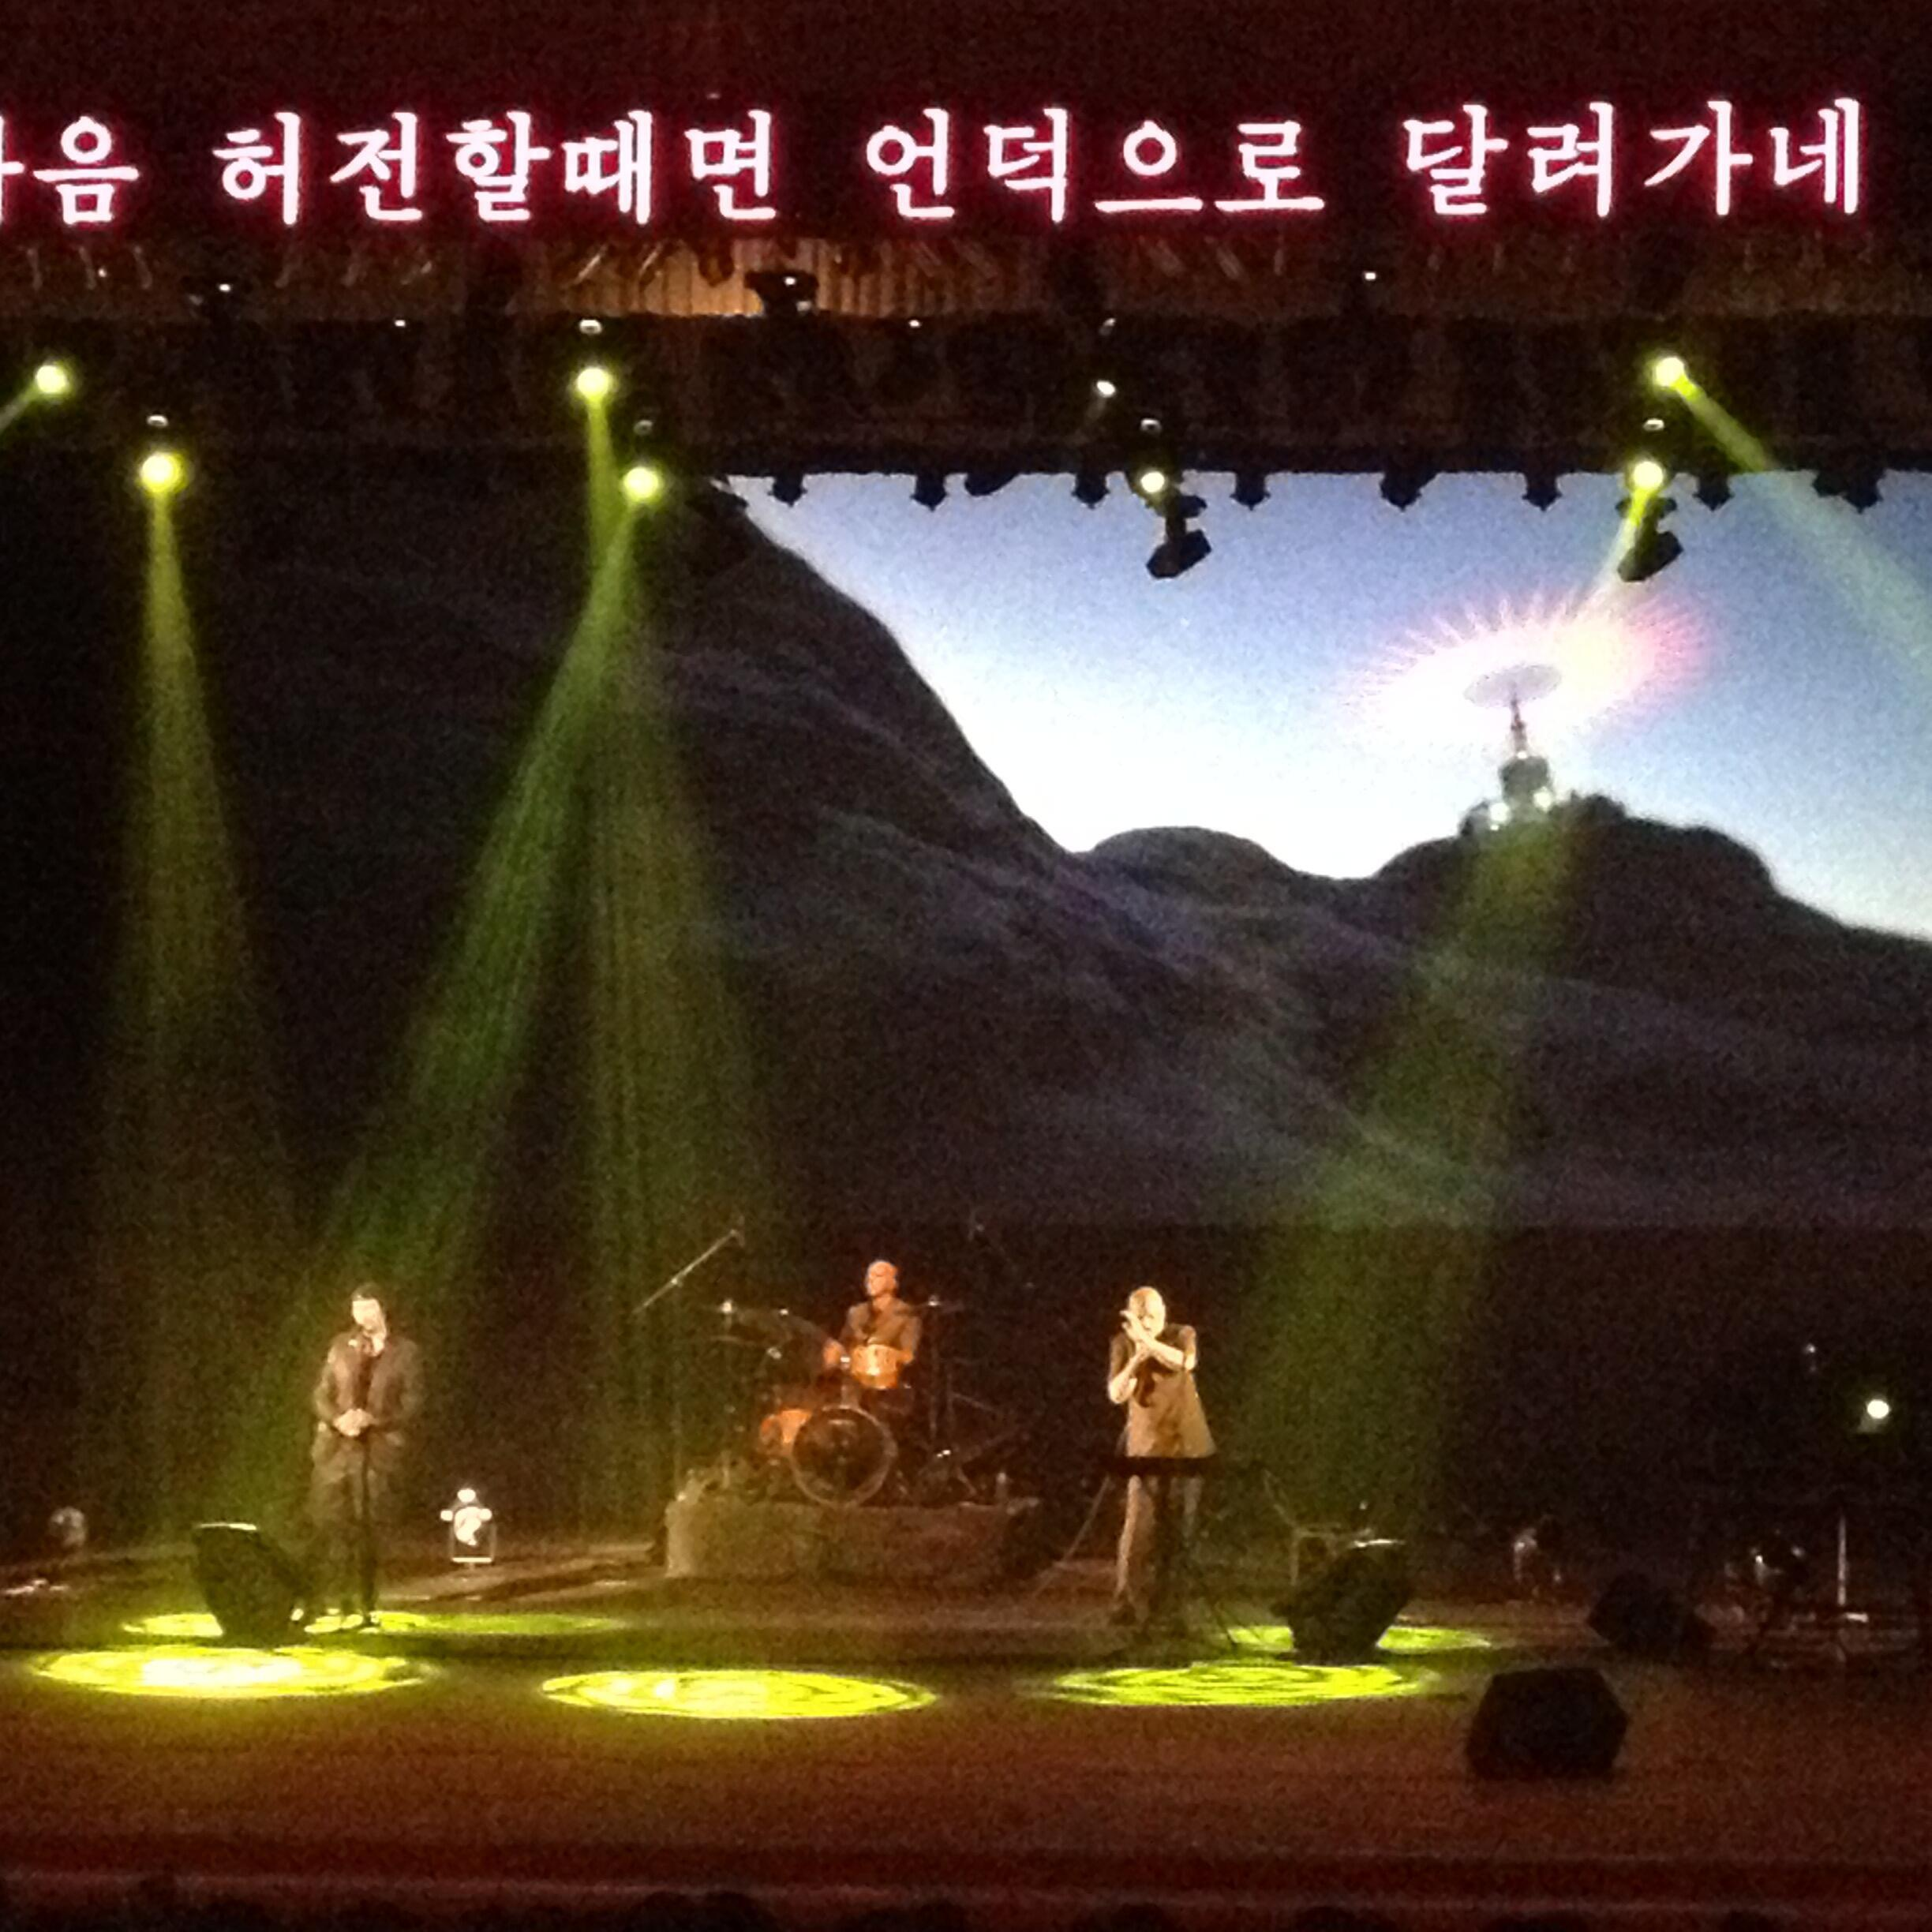 Concert by Laibach, 19 Aug, in Pyongyang. Photo by Simon Cockerell.